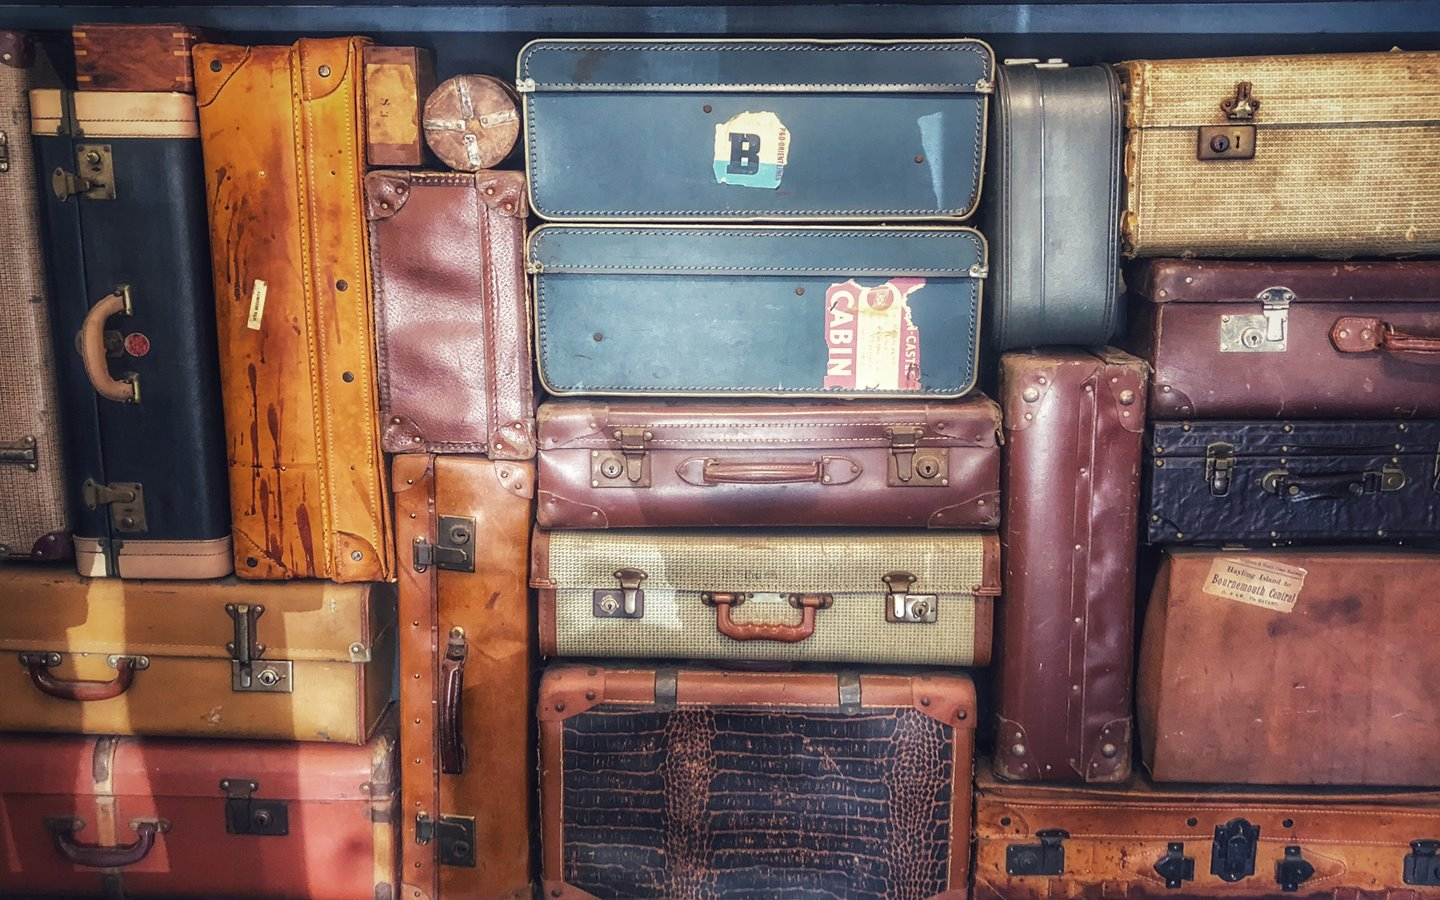 While not overtly one of the essential things for packing, suitcases allow you to carry valuable items